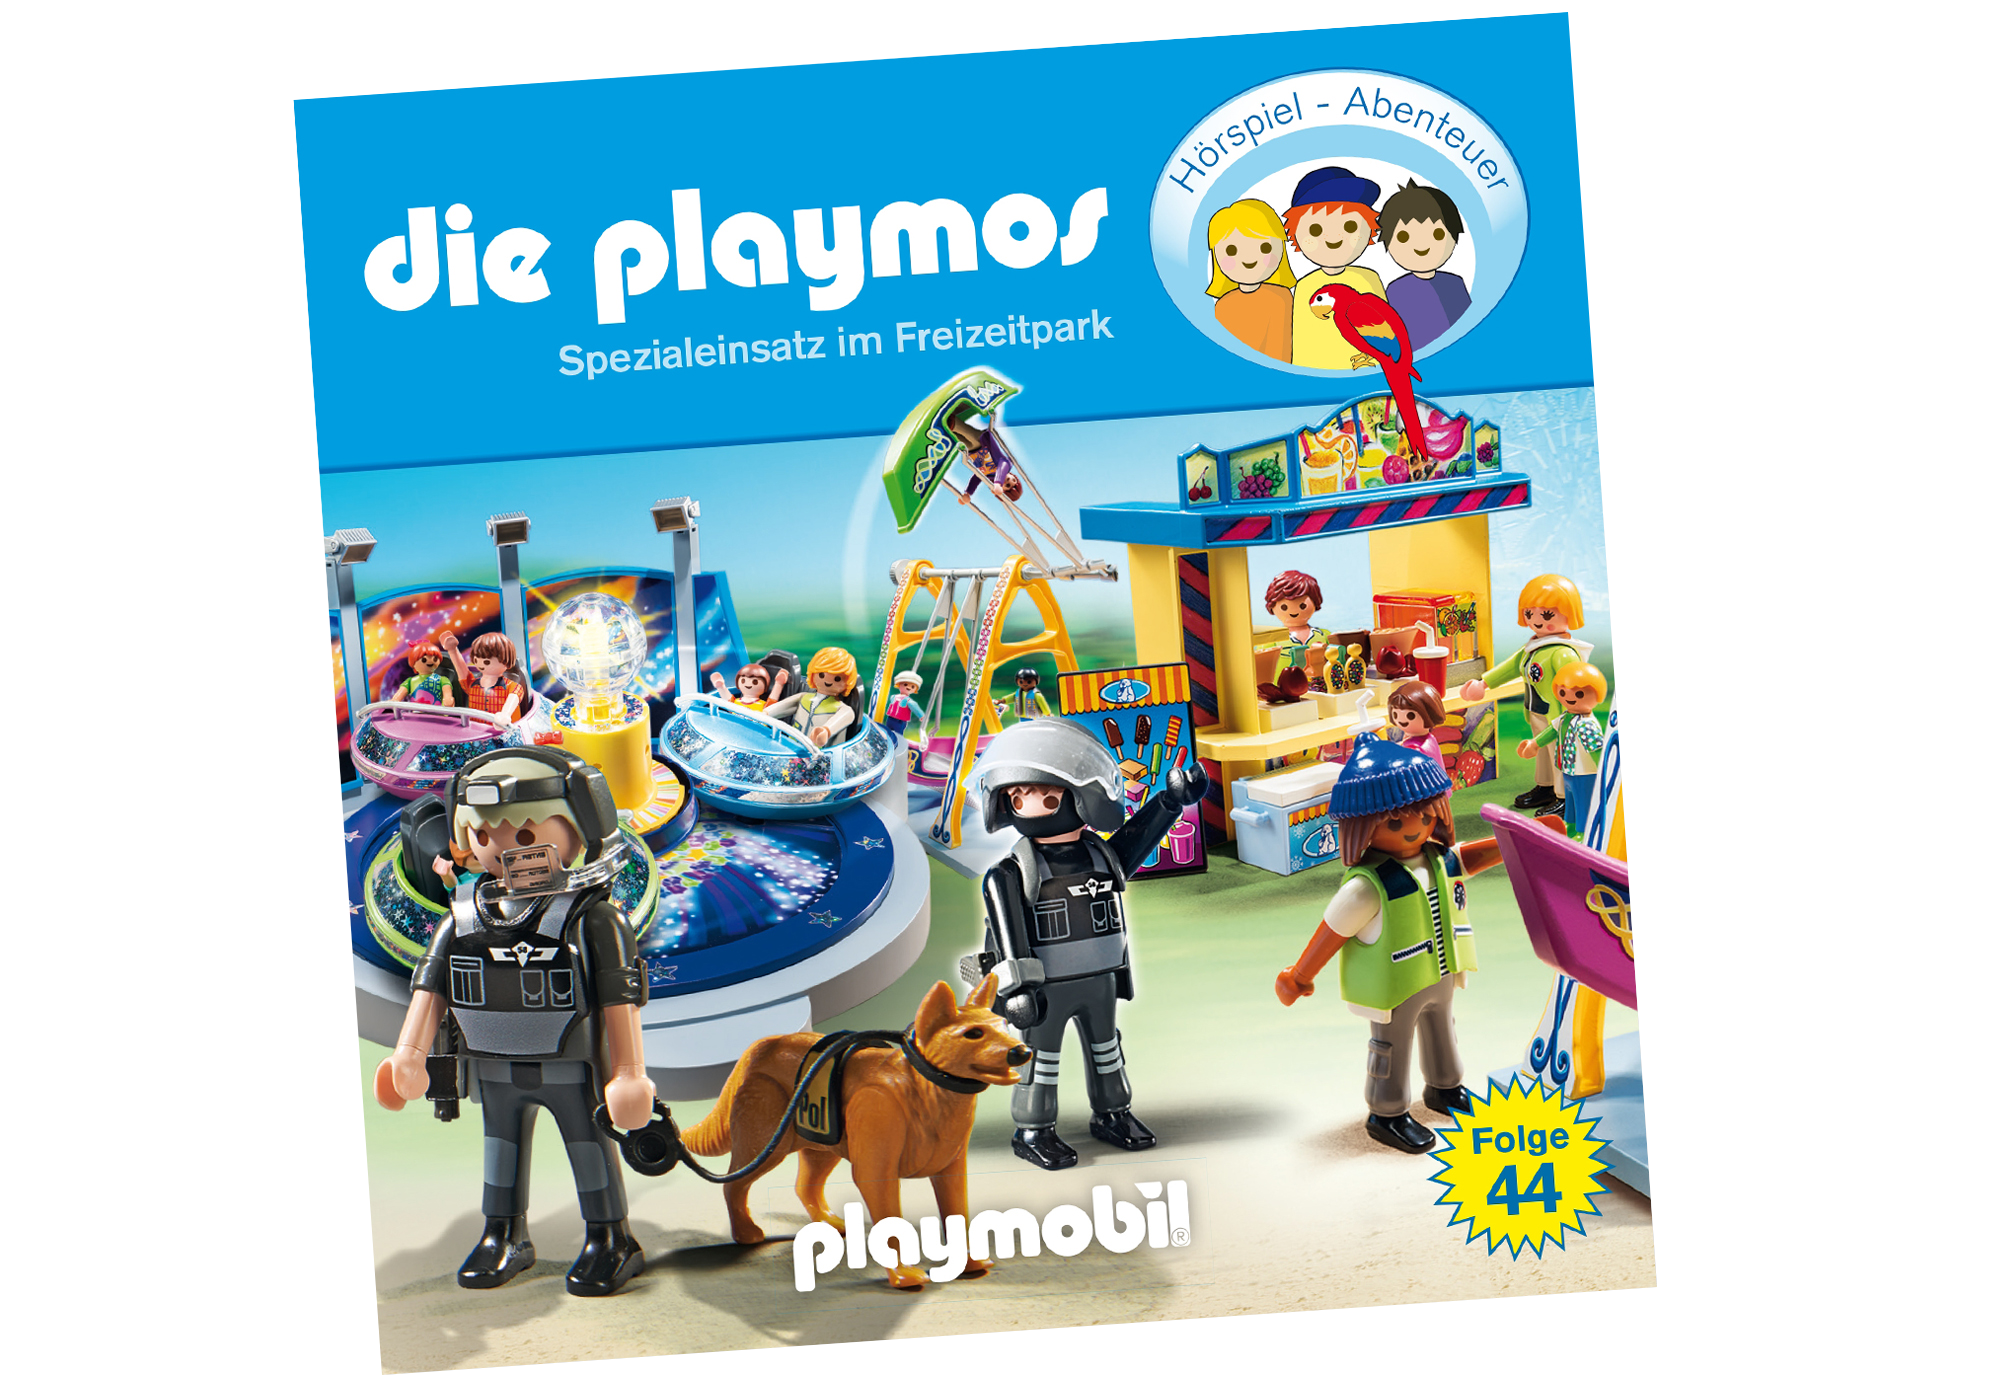 http://media.playmobil.com/i/playmobil/80457_product_detail